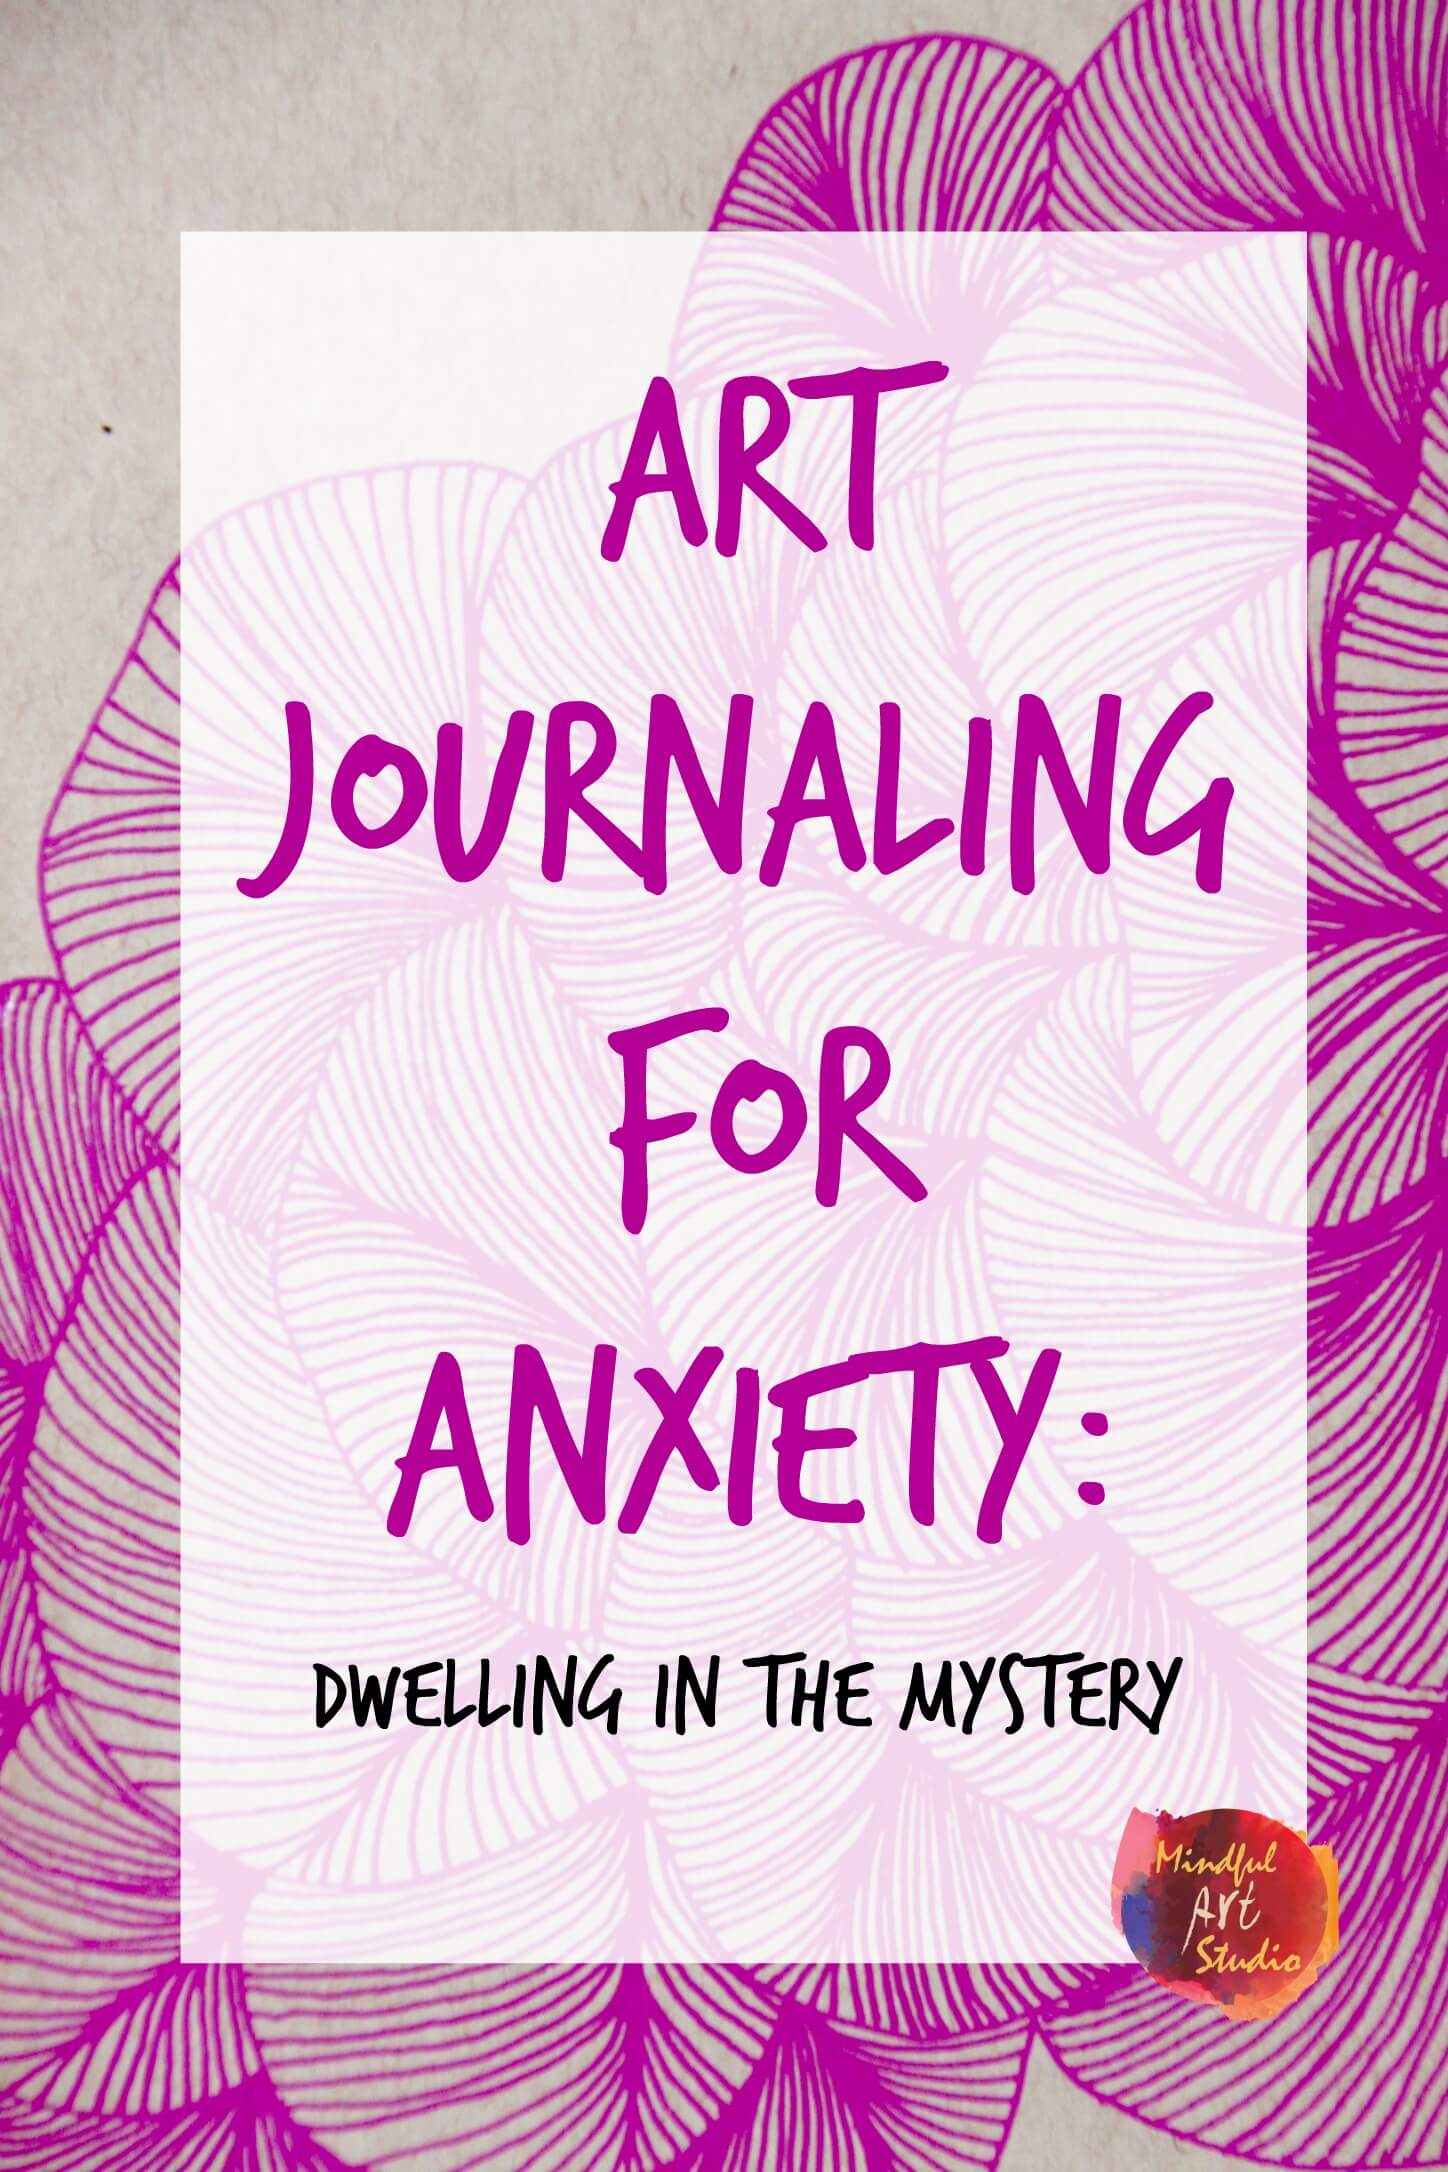 Art Journaling for Anxiety: Dwelling in the Mystery